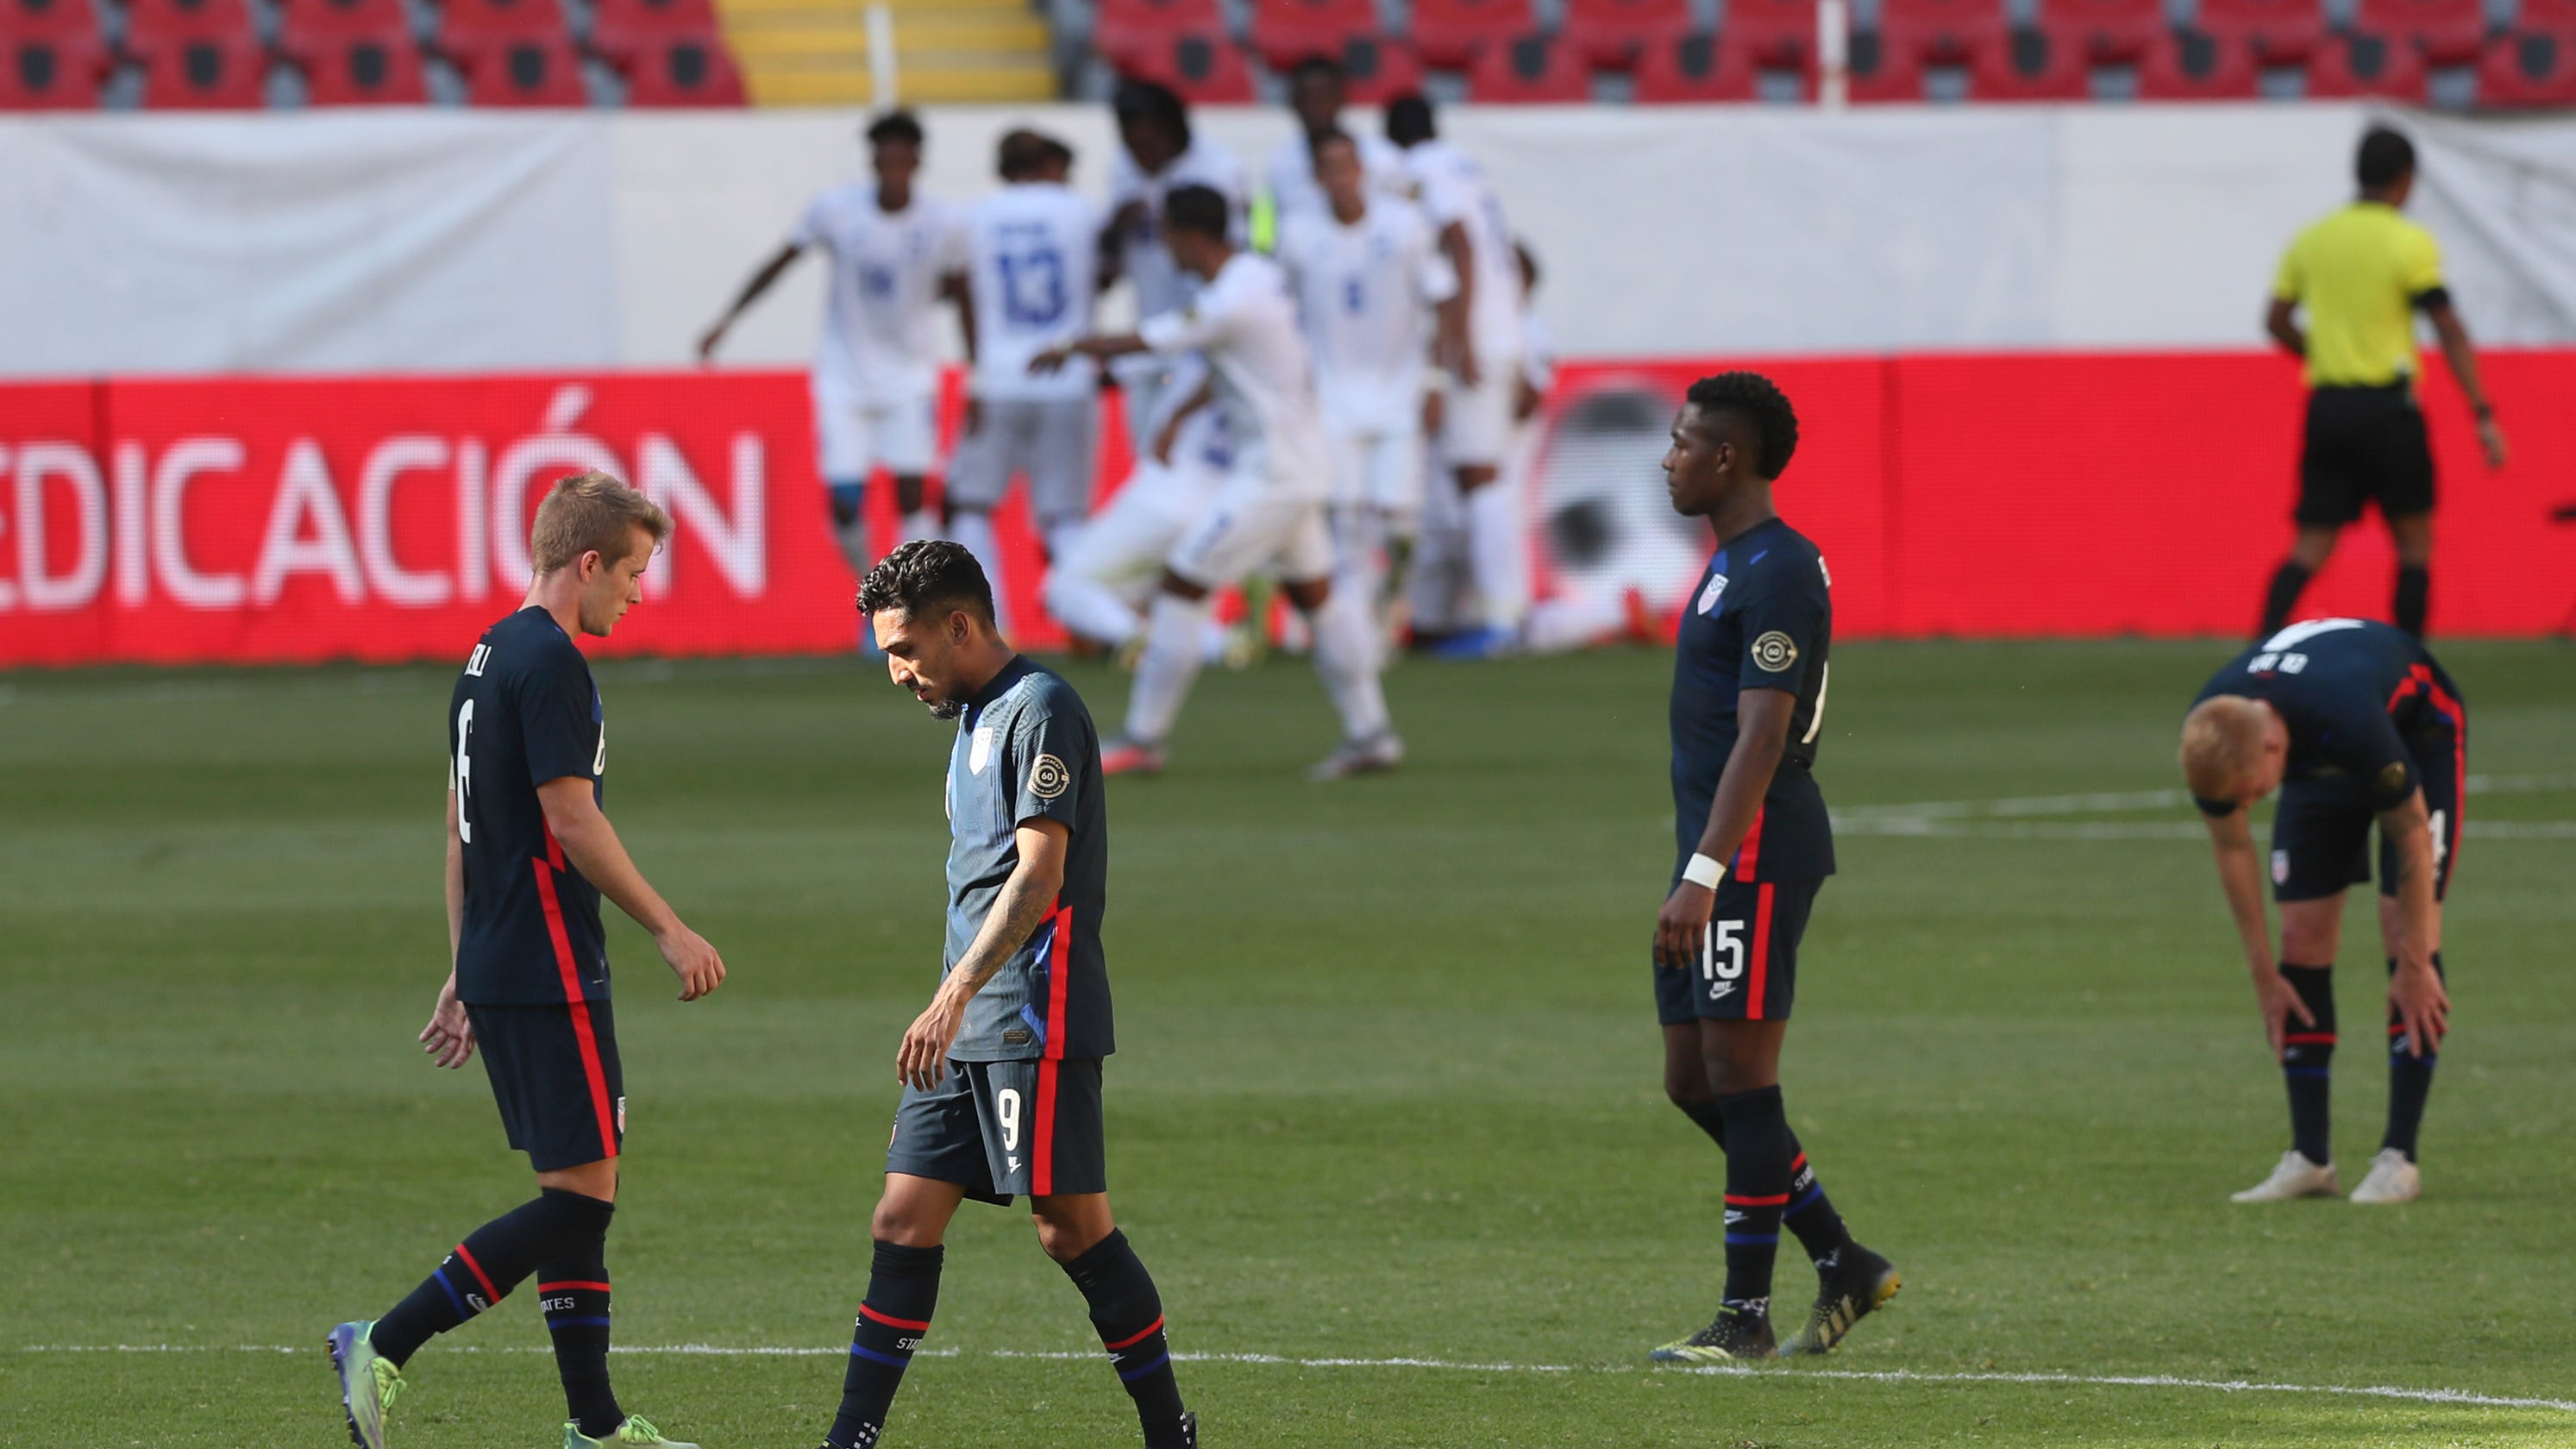 U.S. fails to qualify for Olympic Games in men's soccer after loss to Honduras – USA TODAY